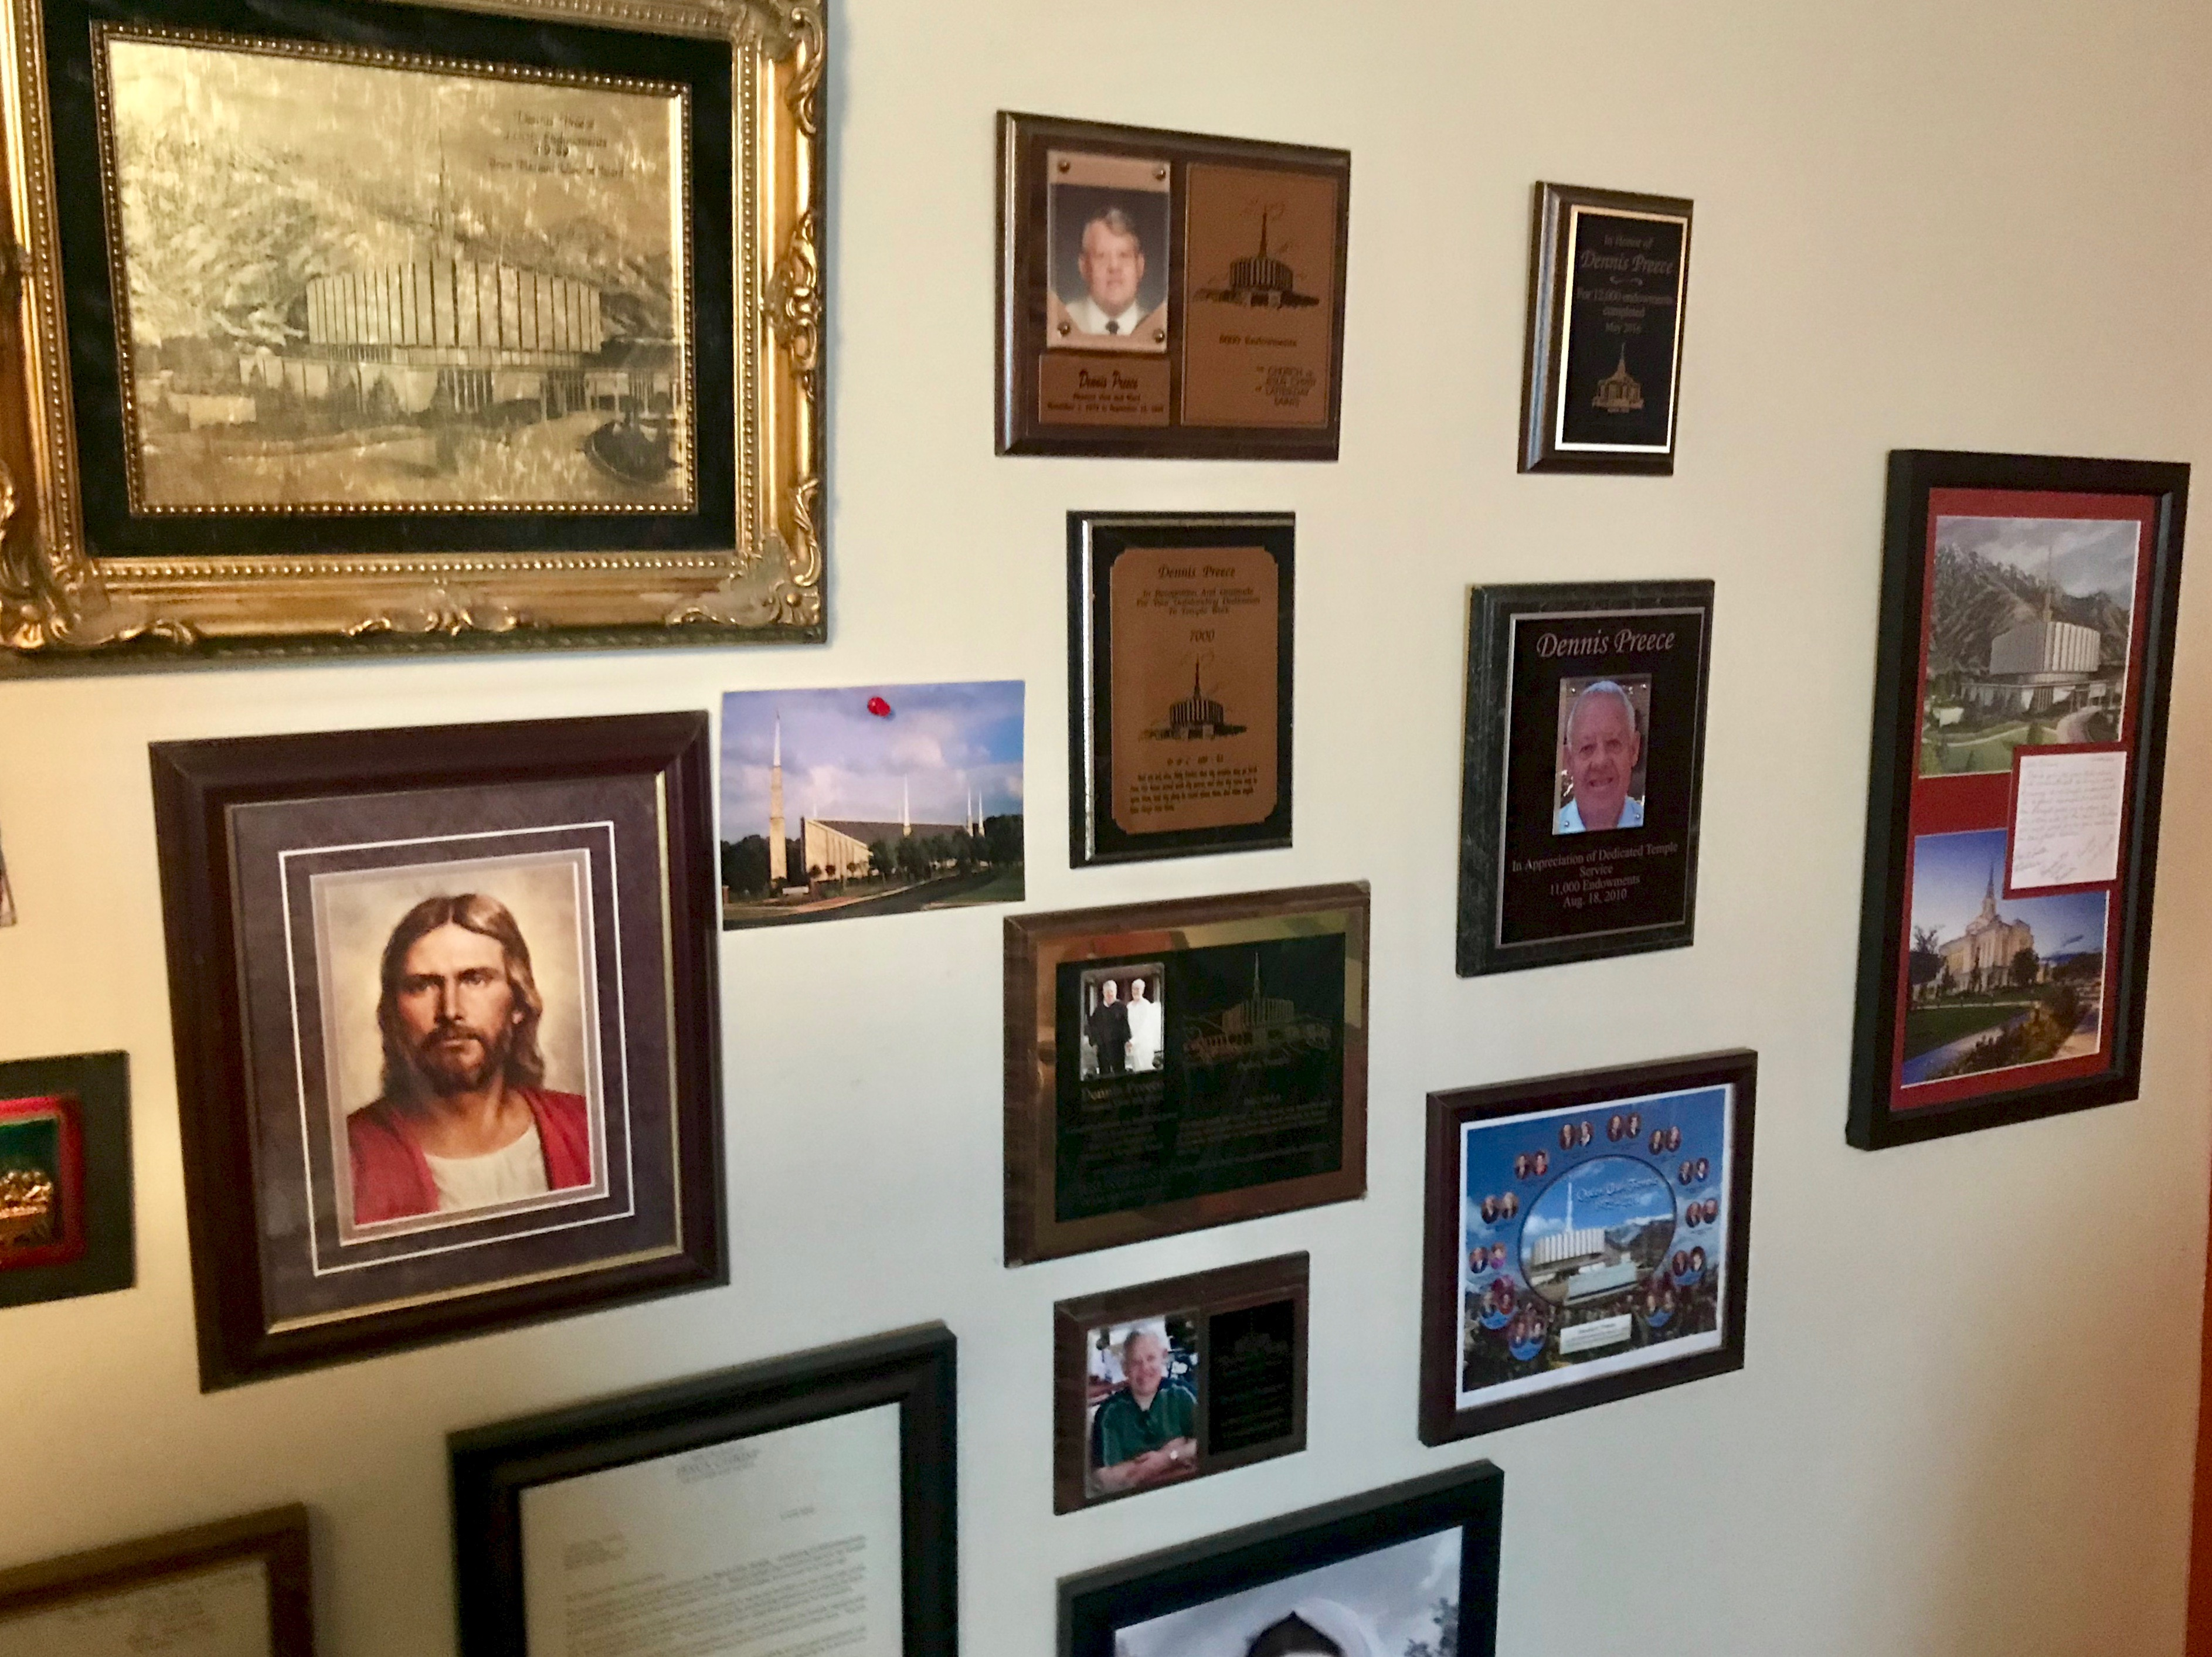 Dennis Preece's bedroom wall is a tribute to his temple service.